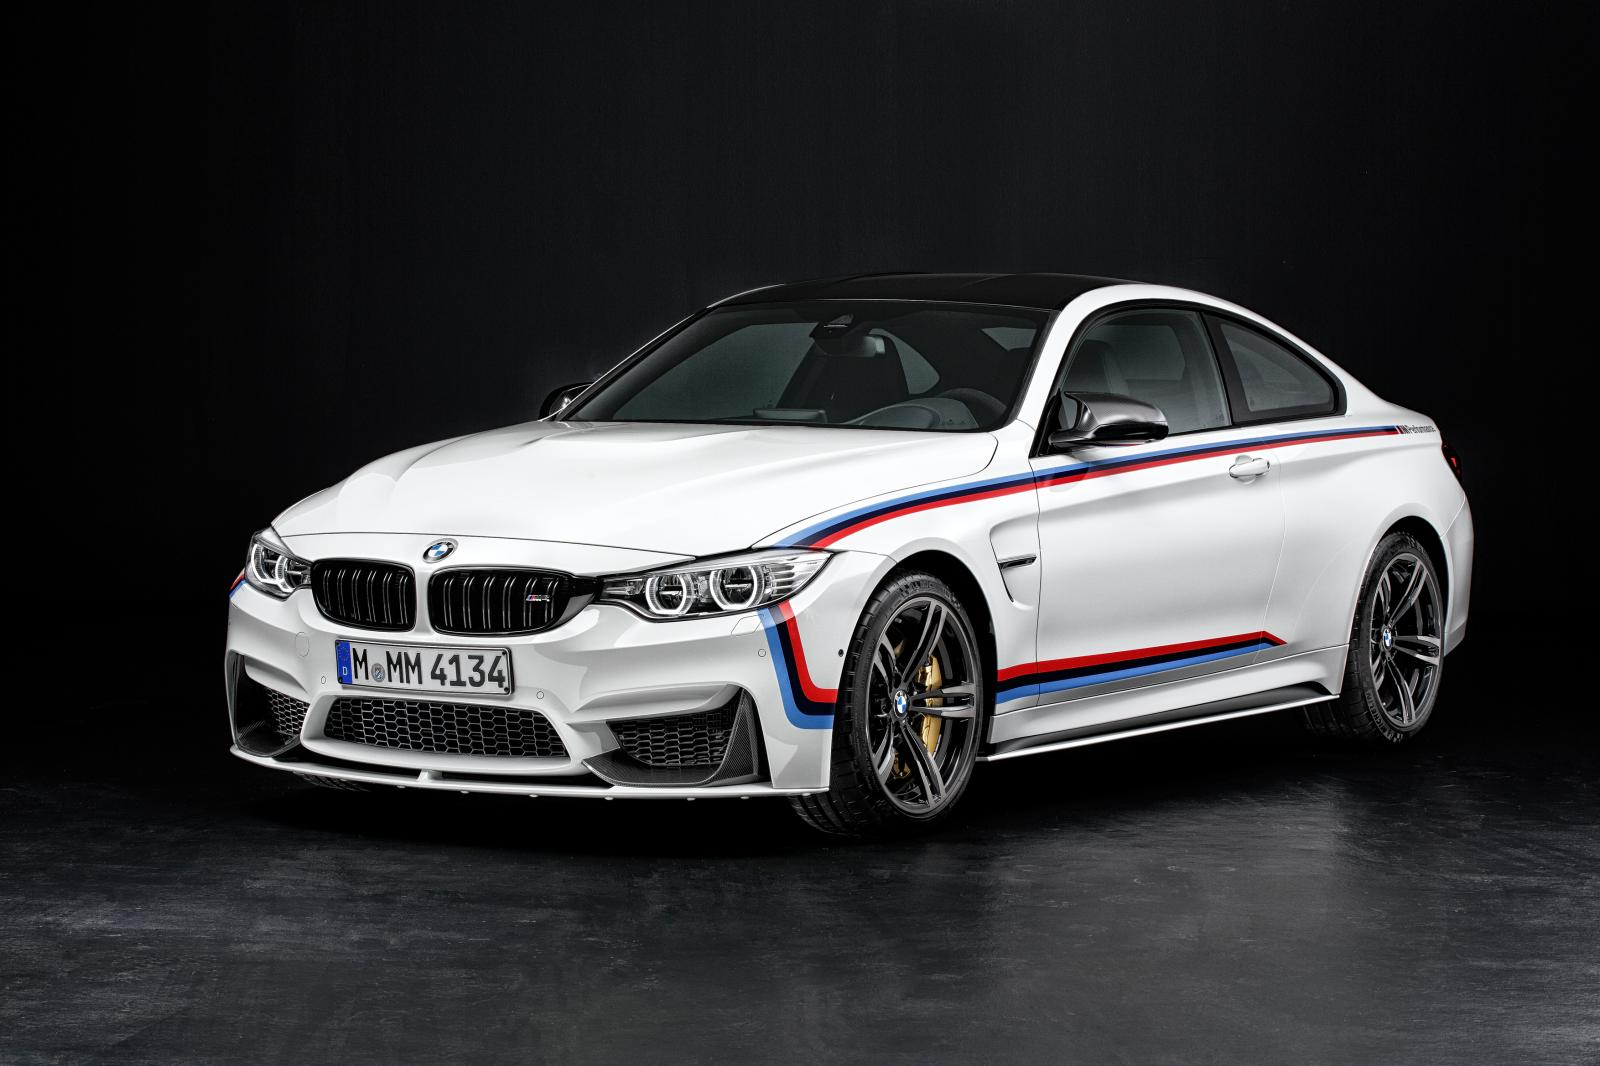 m performance parts revealed for bmw m4 and m3 gtspirit. Black Bedroom Furniture Sets. Home Design Ideas